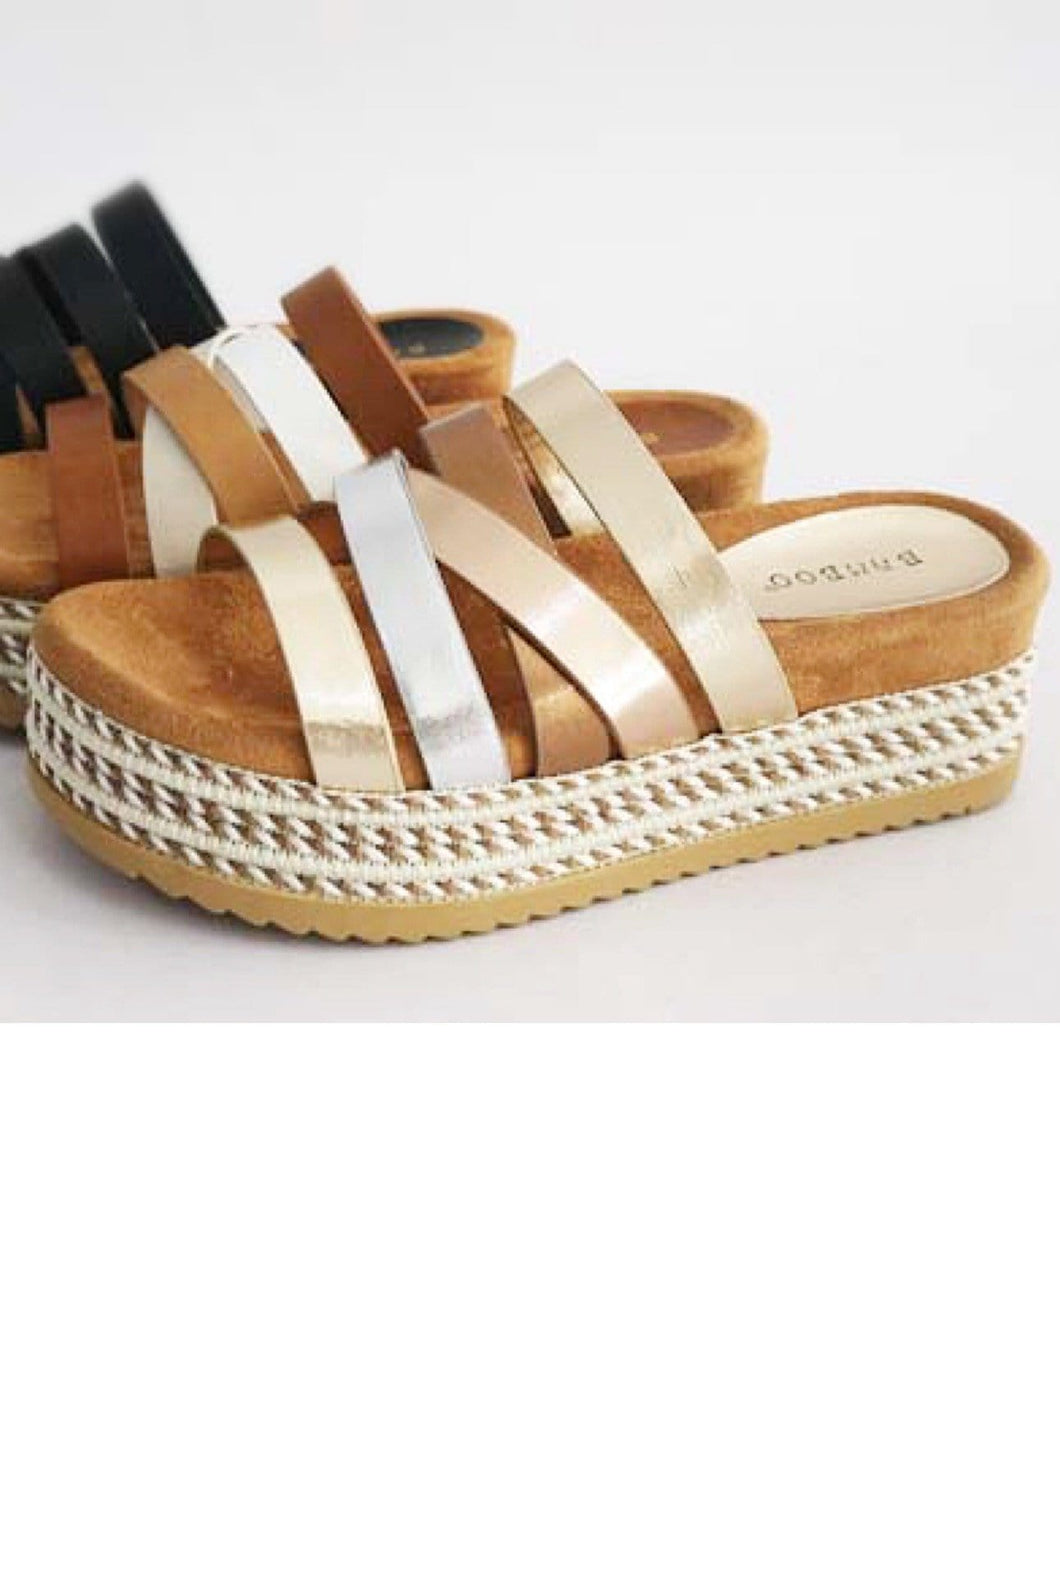 UNFORGETTABLE FUN SLIP ON PLATFORM SANDAL-MULTI - Infinity Raine